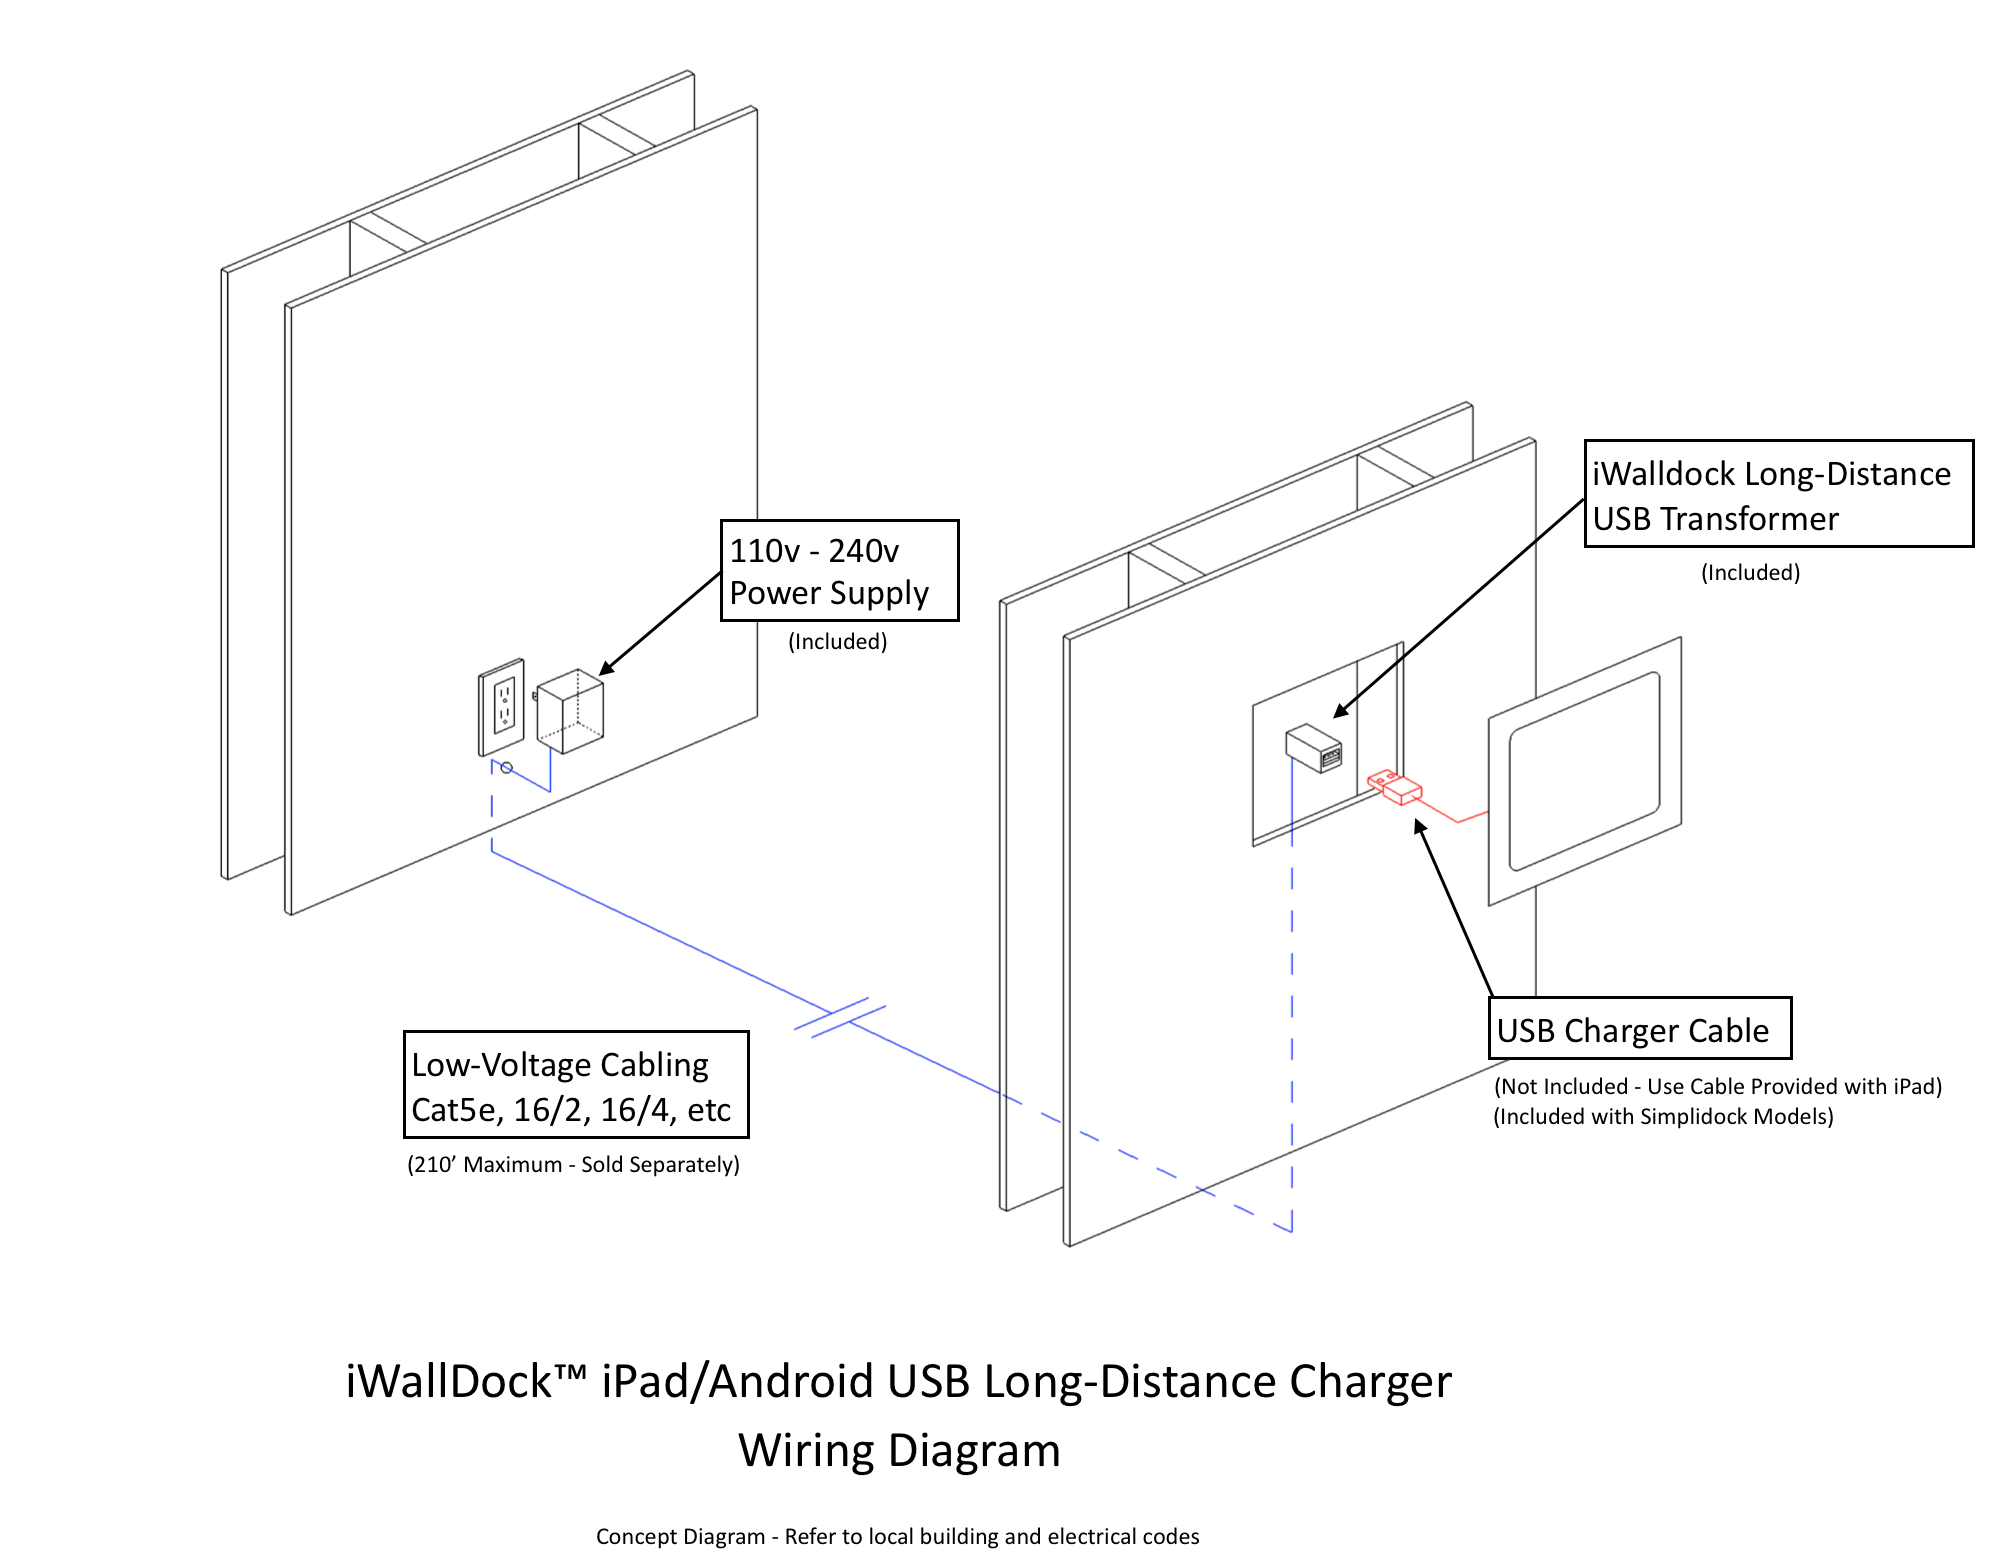 Miraculous Iwalldock In Wall Tablet Mounting System Wiring 101 Xrenketaxxcnl